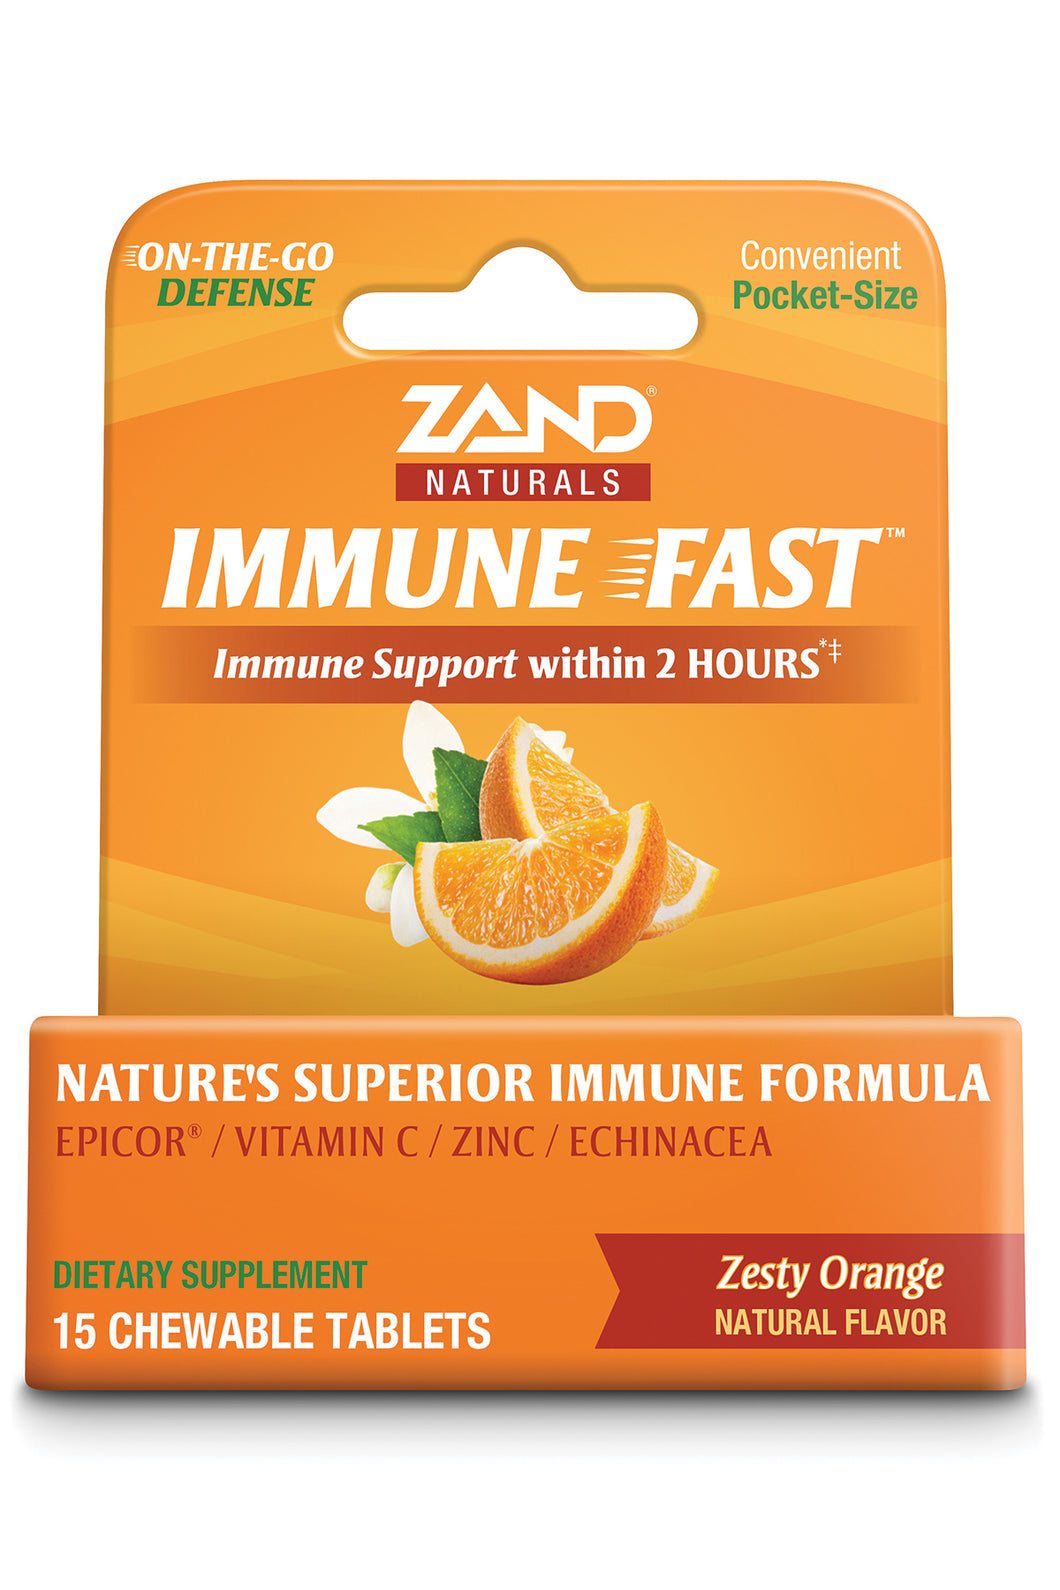 Zand Naturals Immune Fast - Zesty Orange